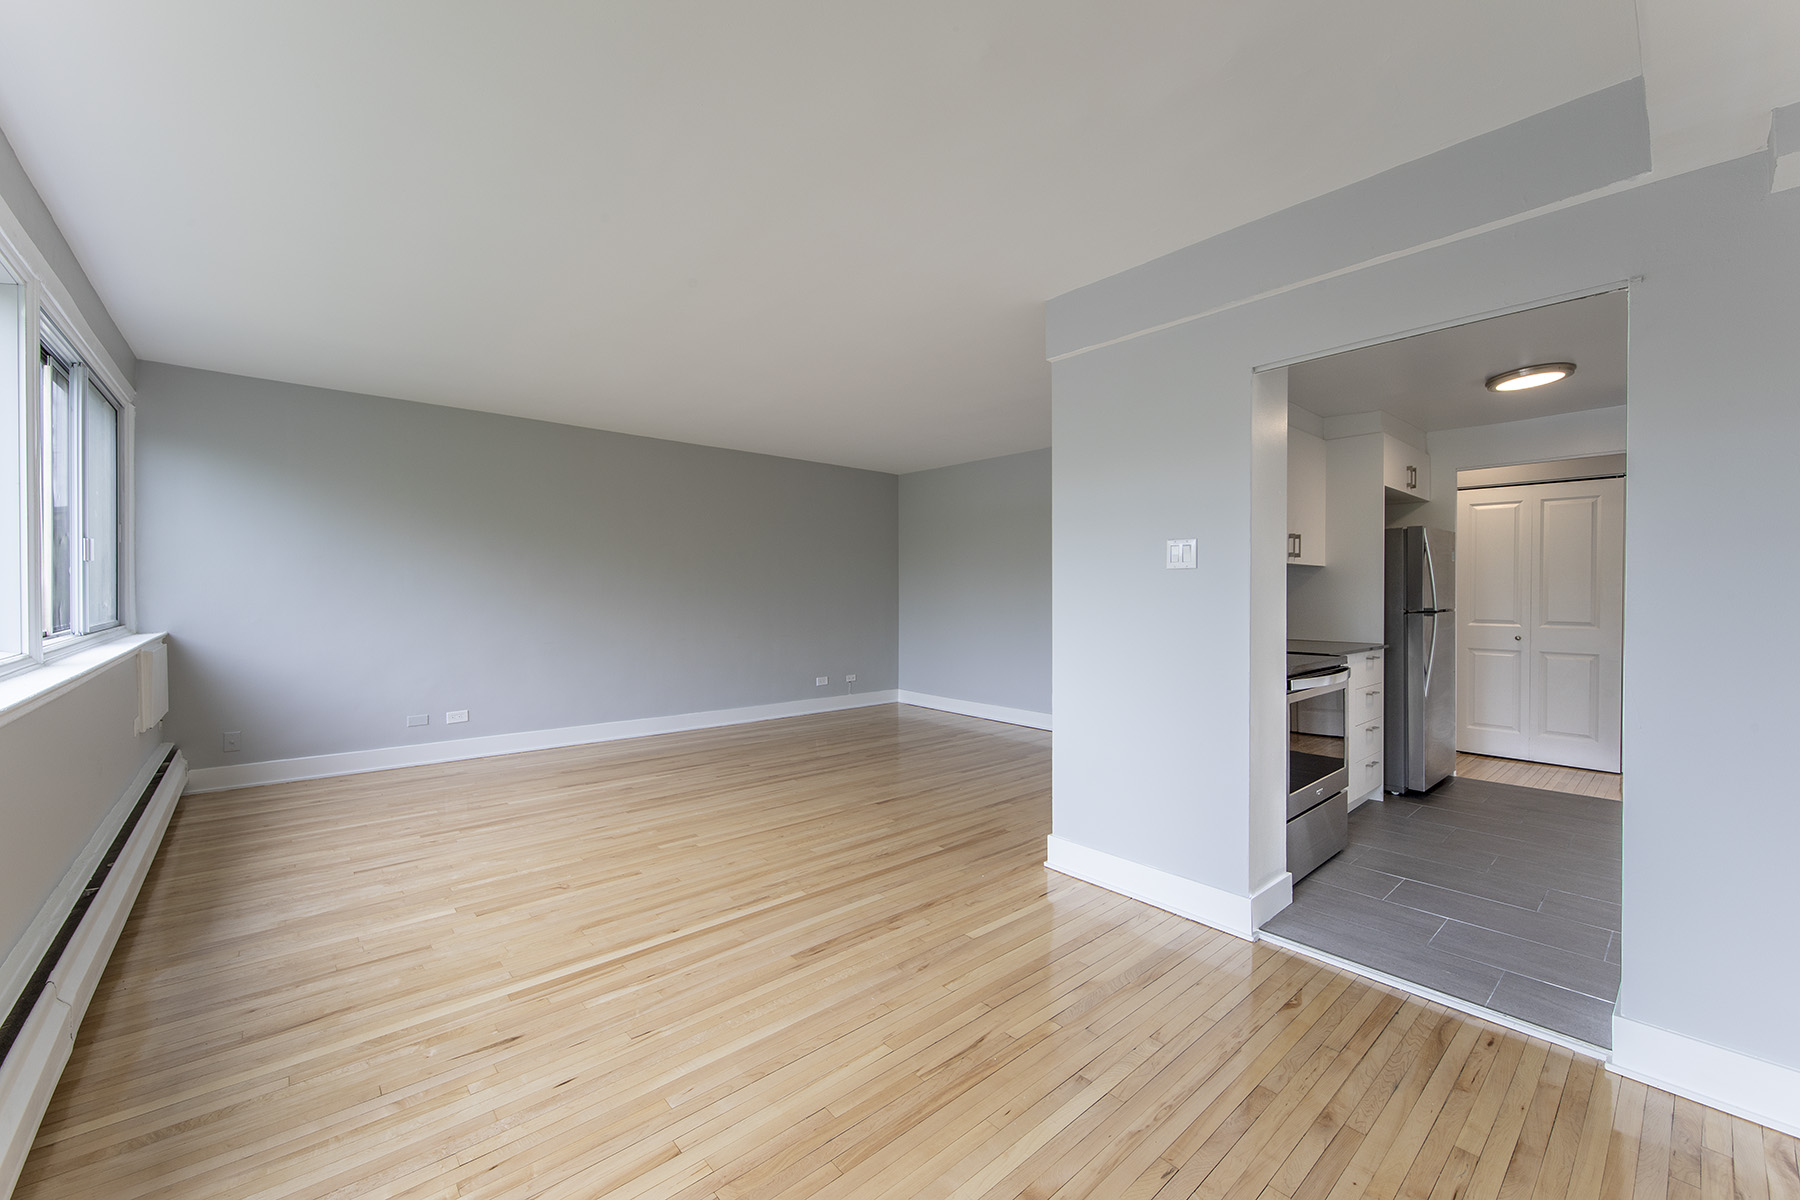 1 bedroom Apartments for rent in Cote-St-Luc at 5765 Cote St-Luc - Photo 02 - RentQuebecApartments – L401532